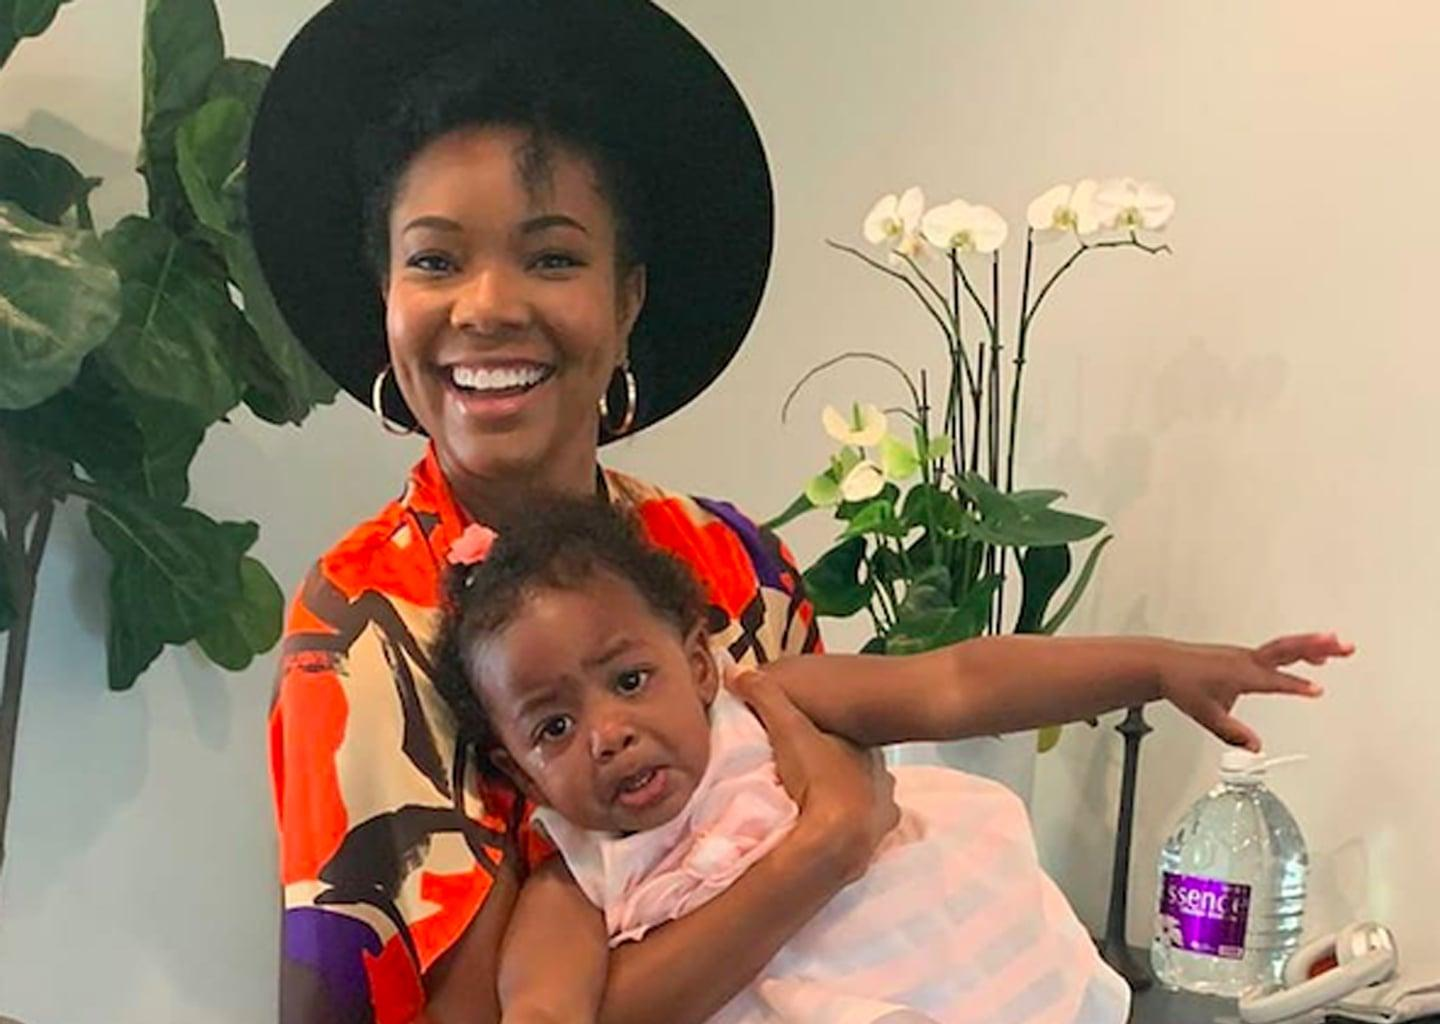 Gabrielle Union Shares Rare Photos Of Her Daughter, Kaavia James Smiling - See Them Here!